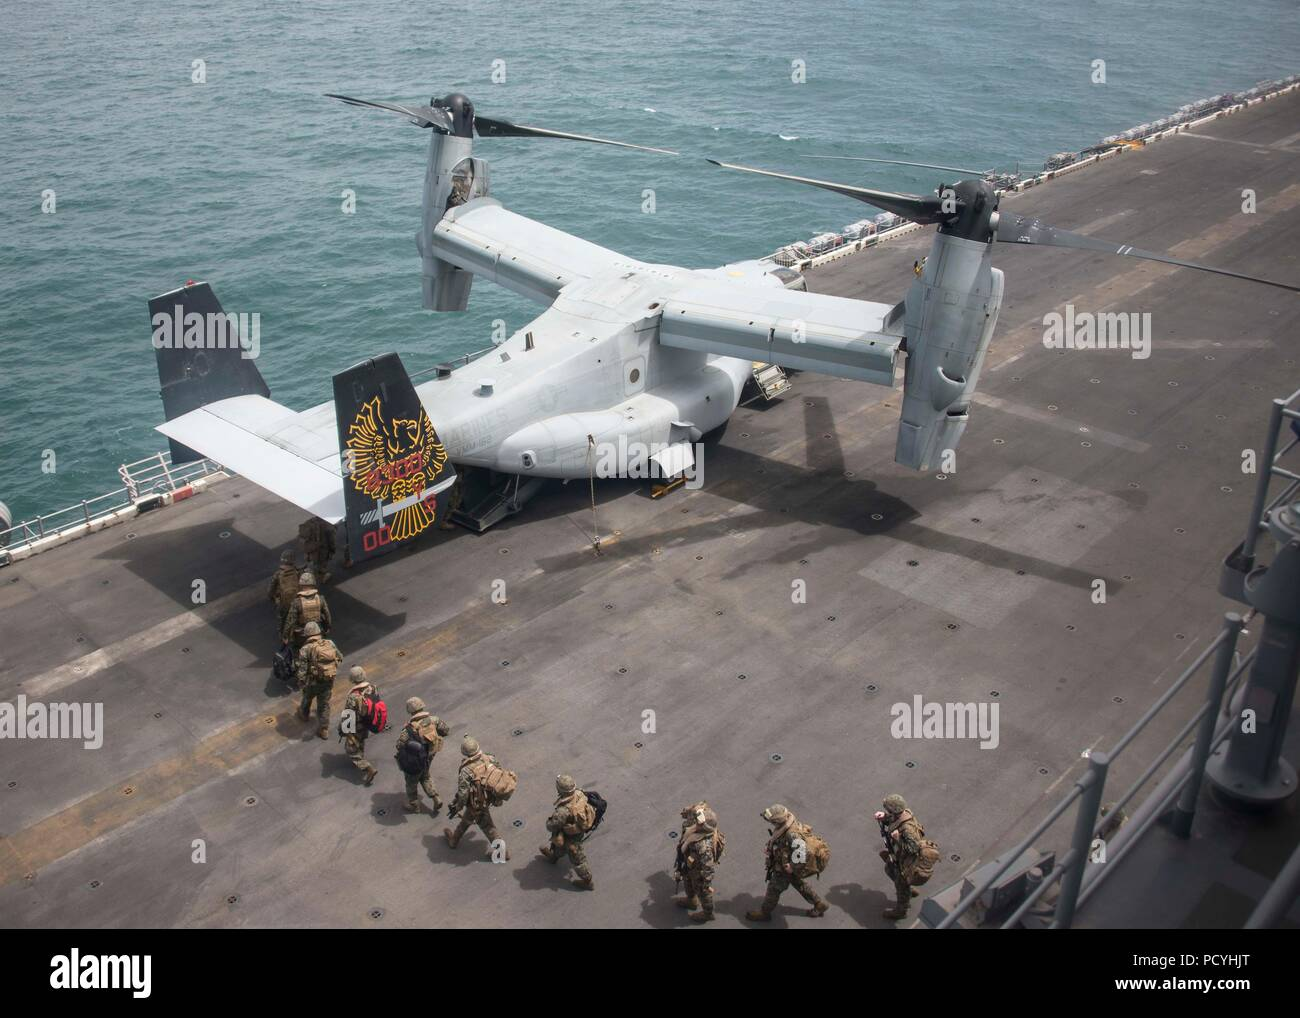 180803-N-ZG607-0047  ATLANTIC OCEAN (Aug. 3, 2018) Sailors and Marines load onto an MV-22B Osprey, attached to Marine Medium Tiltrotor Squadron (VMM) 162 (Reinforced) on the flight deck of the Wasp-class amphibious assault ship USS Iwo Jima (LHD 7), Aug. 3, 2018. Iwo Jima is deployed with its amphibious ready group in support of maritime security operations and theatre security cooperation efforts in Europe and the Middle East. (U.S. Navy photo by Mass Communication Specialist 3rd Class Dominick A. Cremeans/Released) Stock Photo